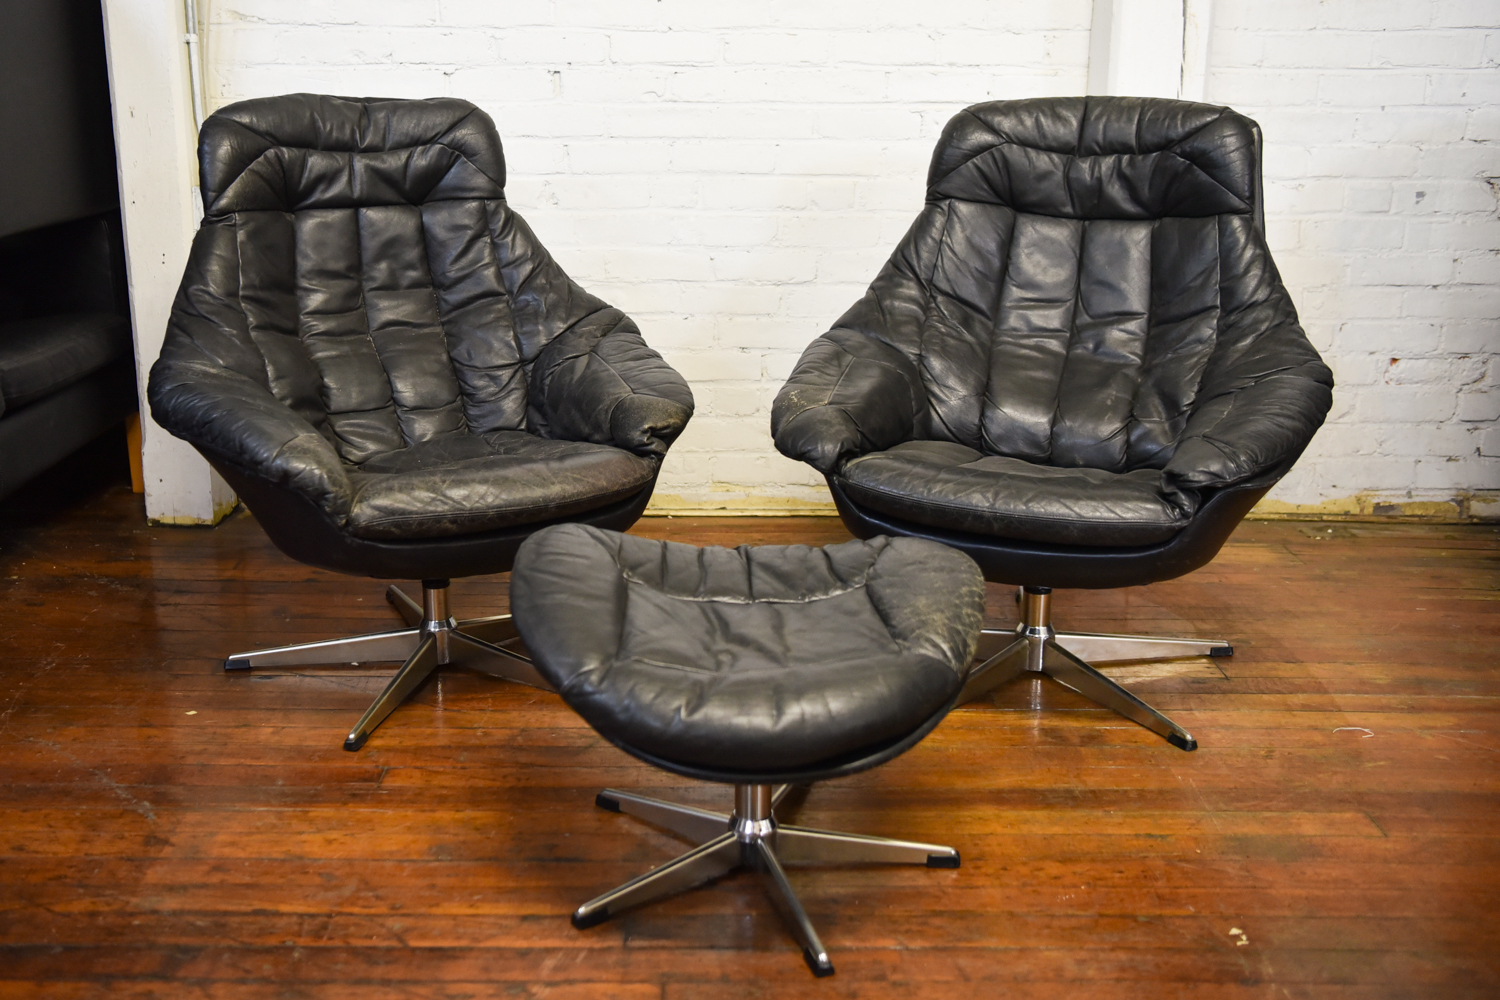 Leather Lounge Pair Of Black Leather Lounge Chairs With Ottoman By H W Klein For Bramin Mobler